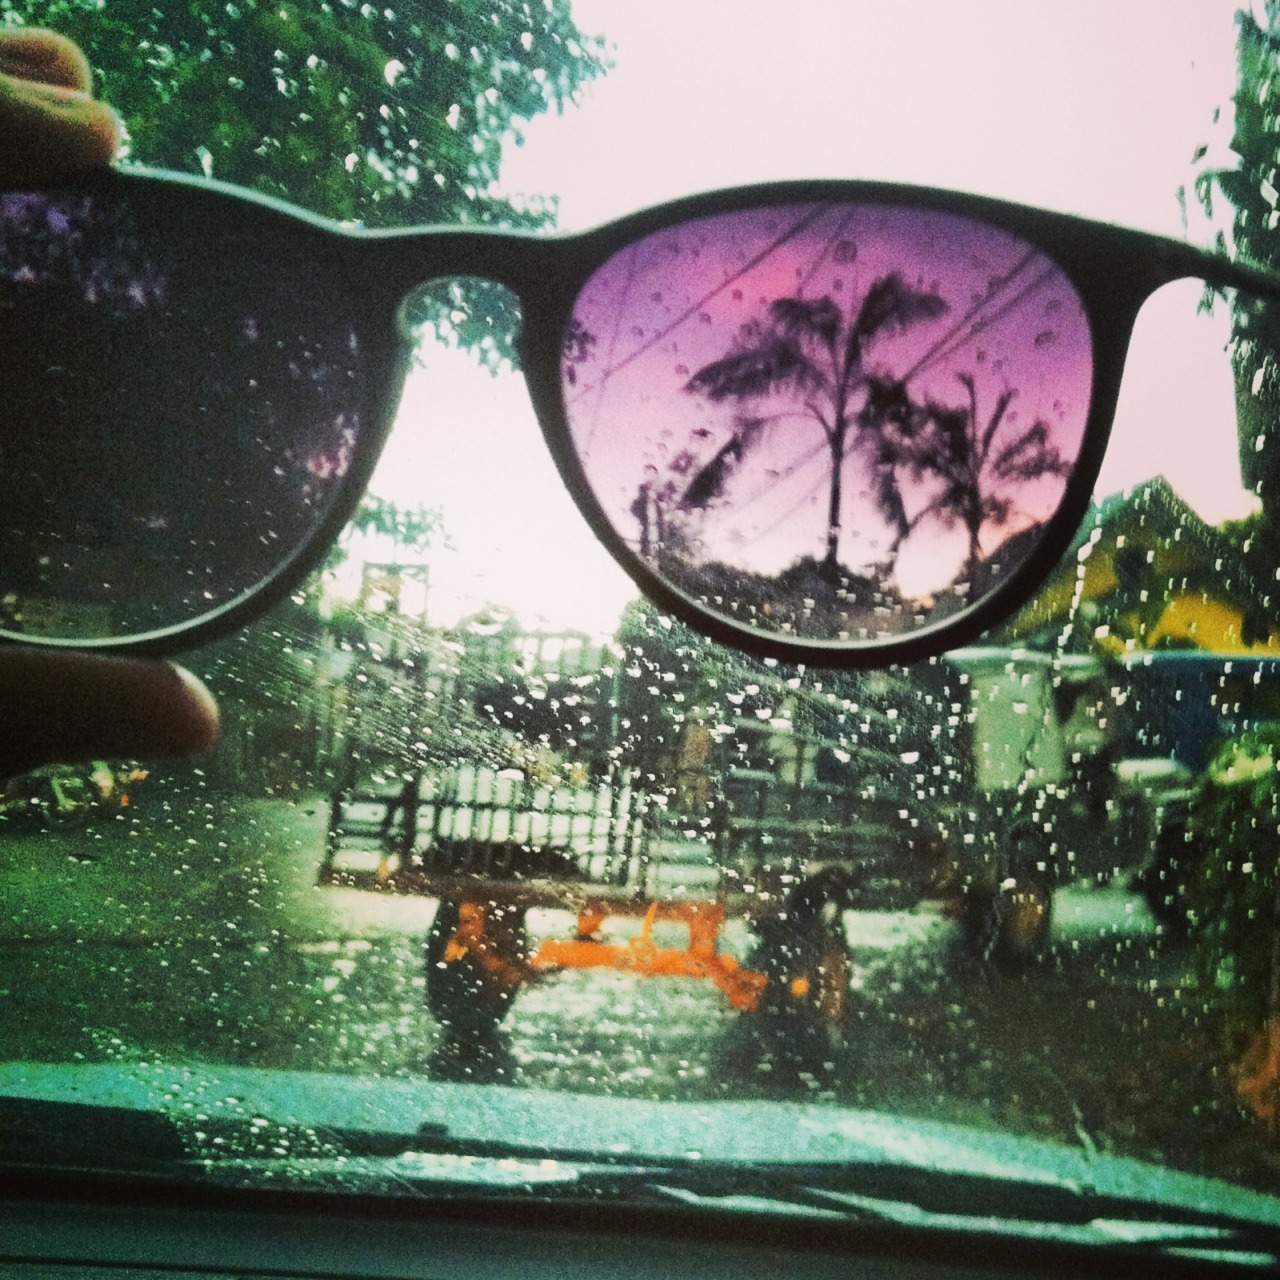 liletsicat:  I smell and see the rain over the sunglasses I wore during the summer as I say goodbye and thank you for the memories